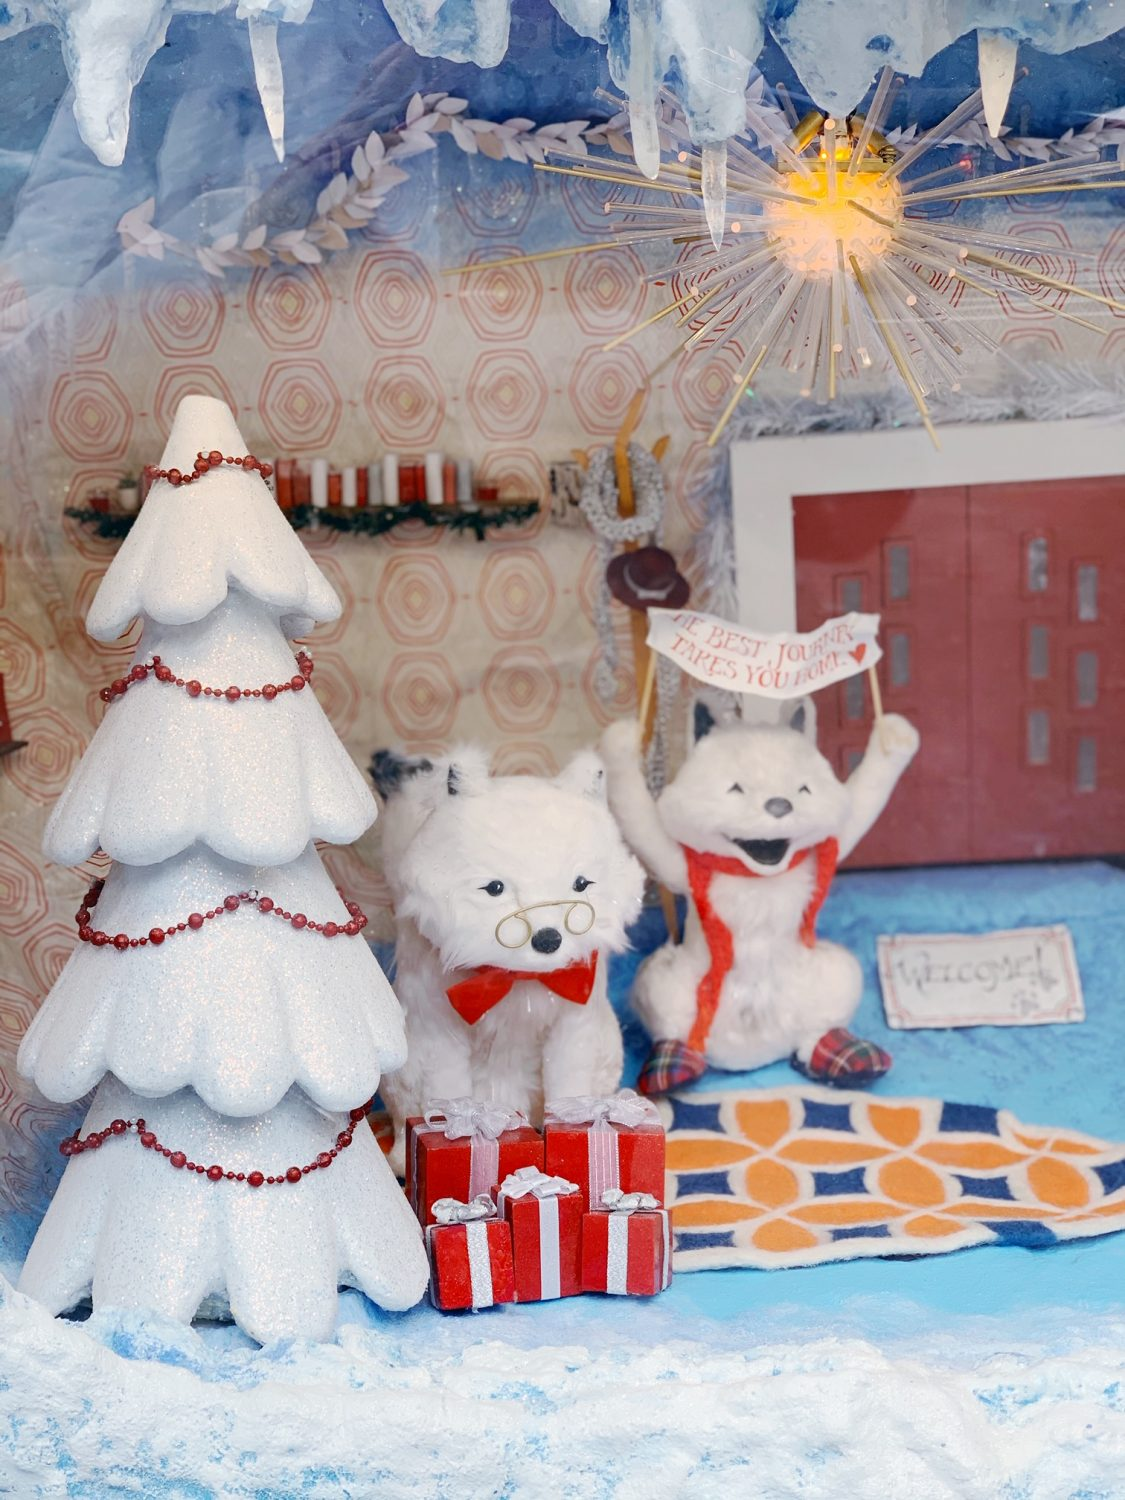 2019 Macy's Holiday Windows on State Street in Chicago